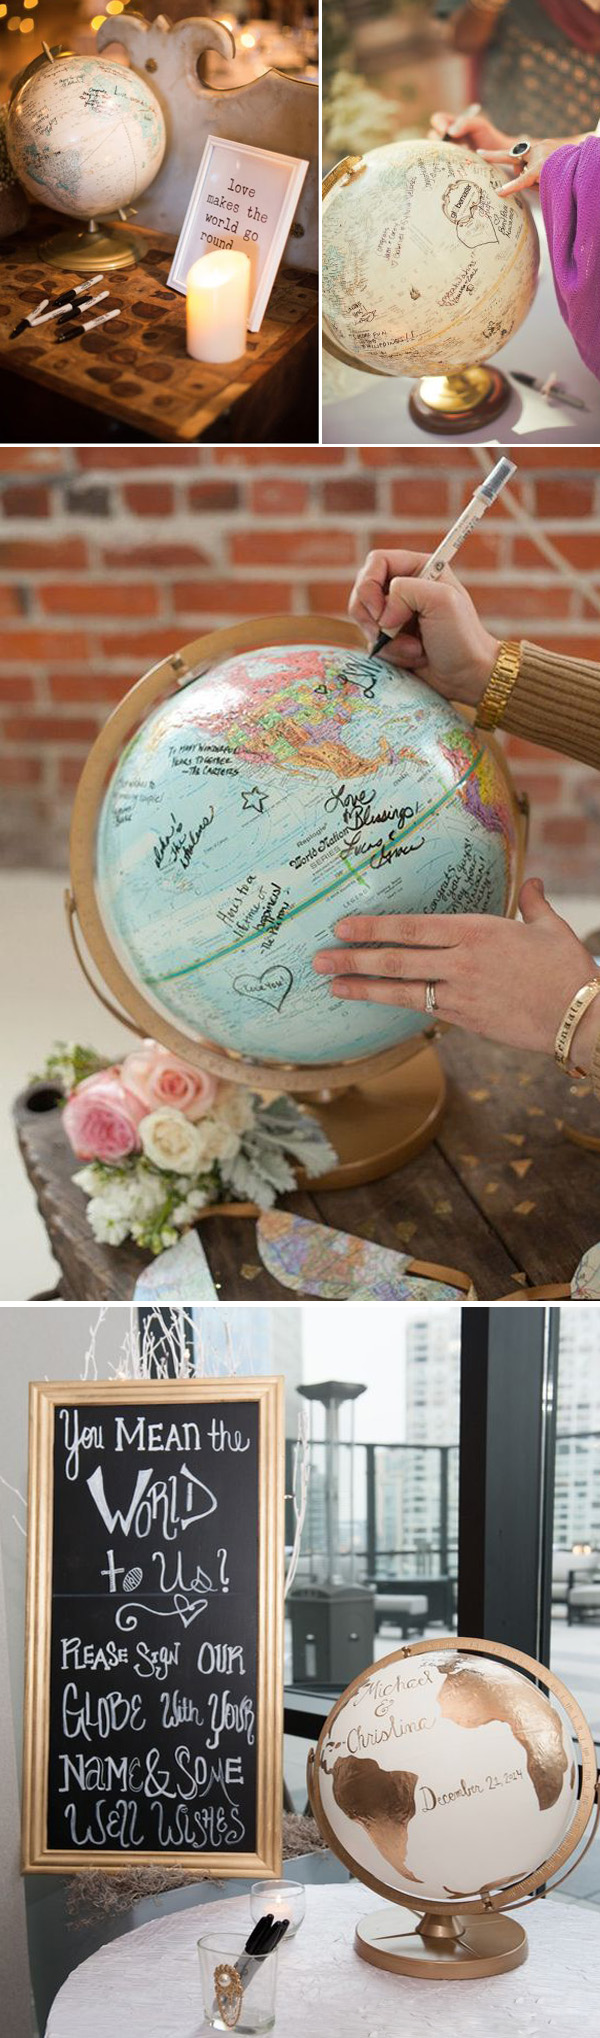 unique-wedding-guest-book-signed-on-tellurion.jpg